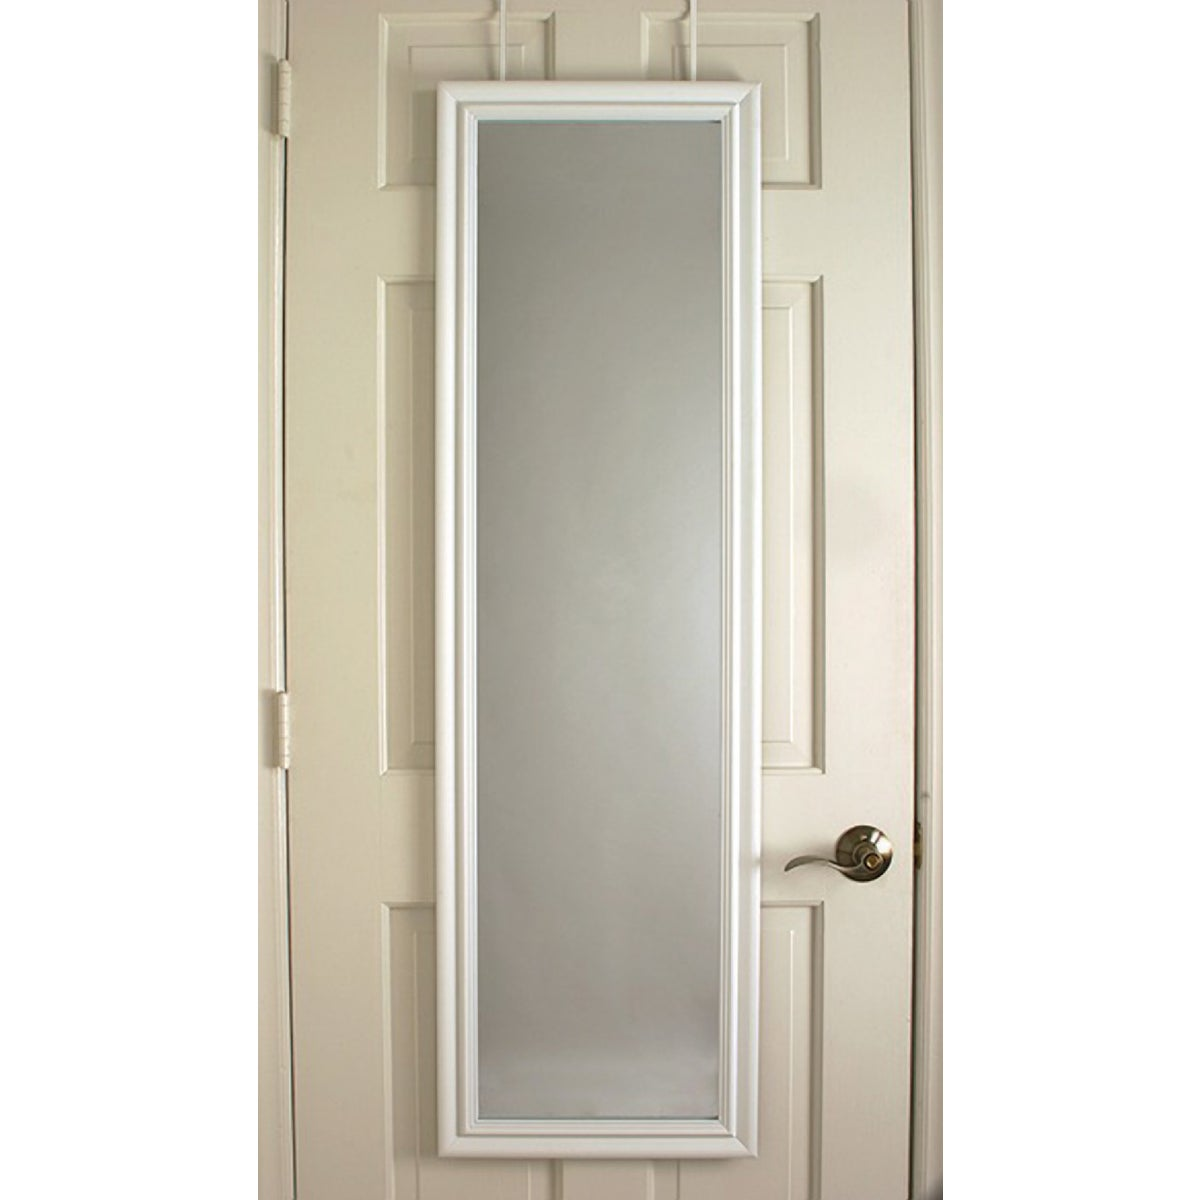 MACKENZIE WHT DR MIRROR - 20-5170 by Home Decor Innovatns